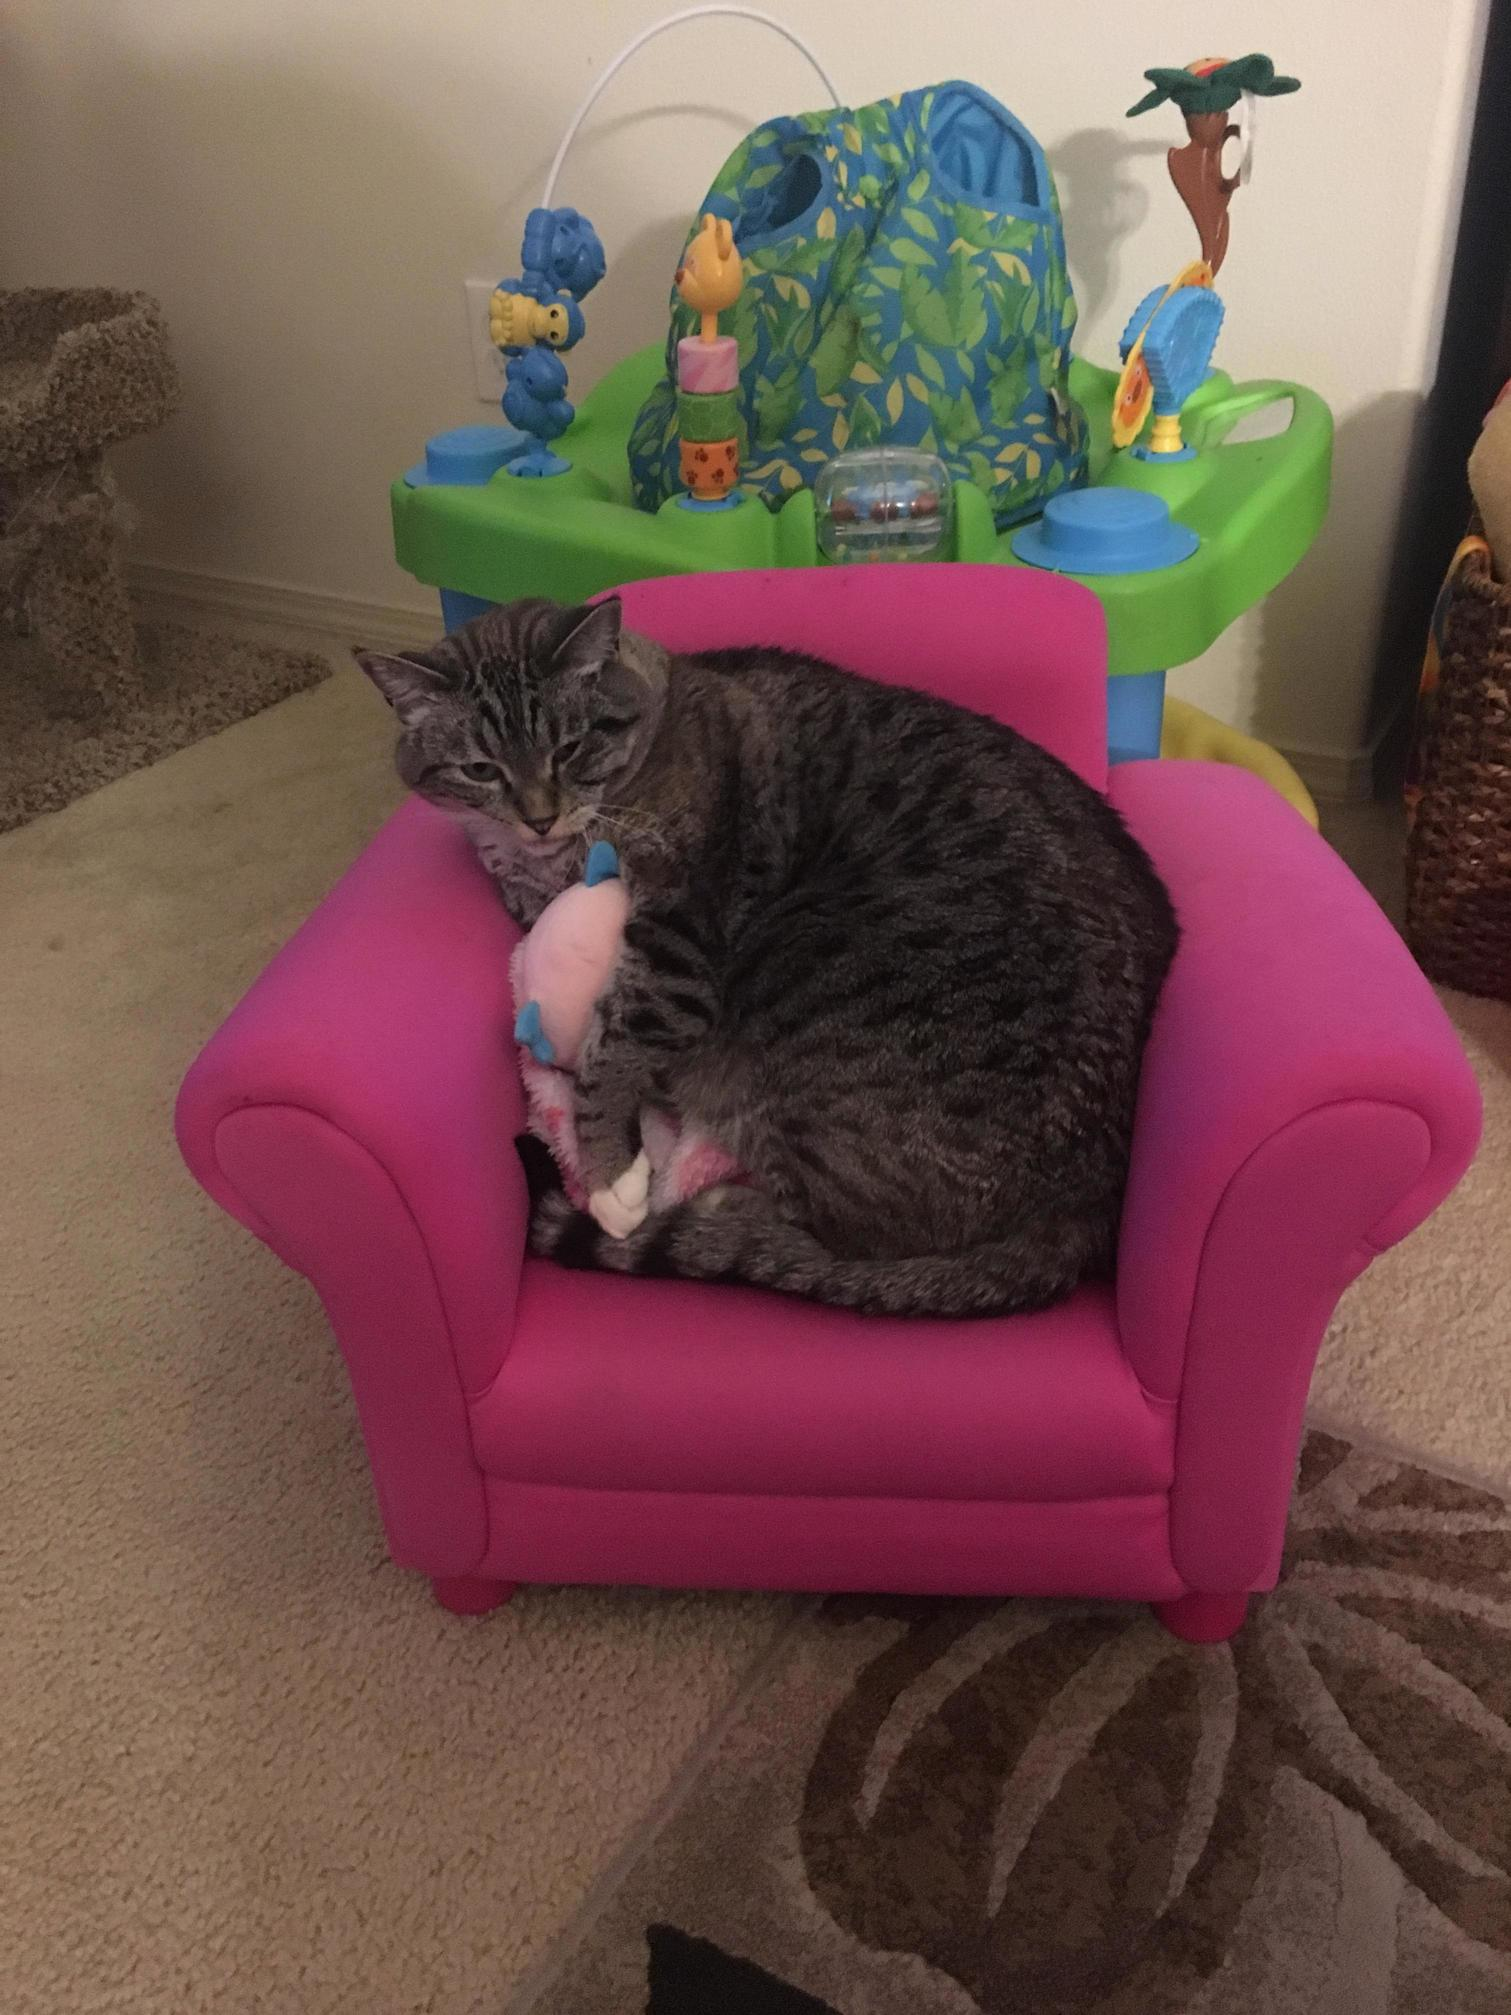 Follow up to my cat and my daughters chair…he still loves it.